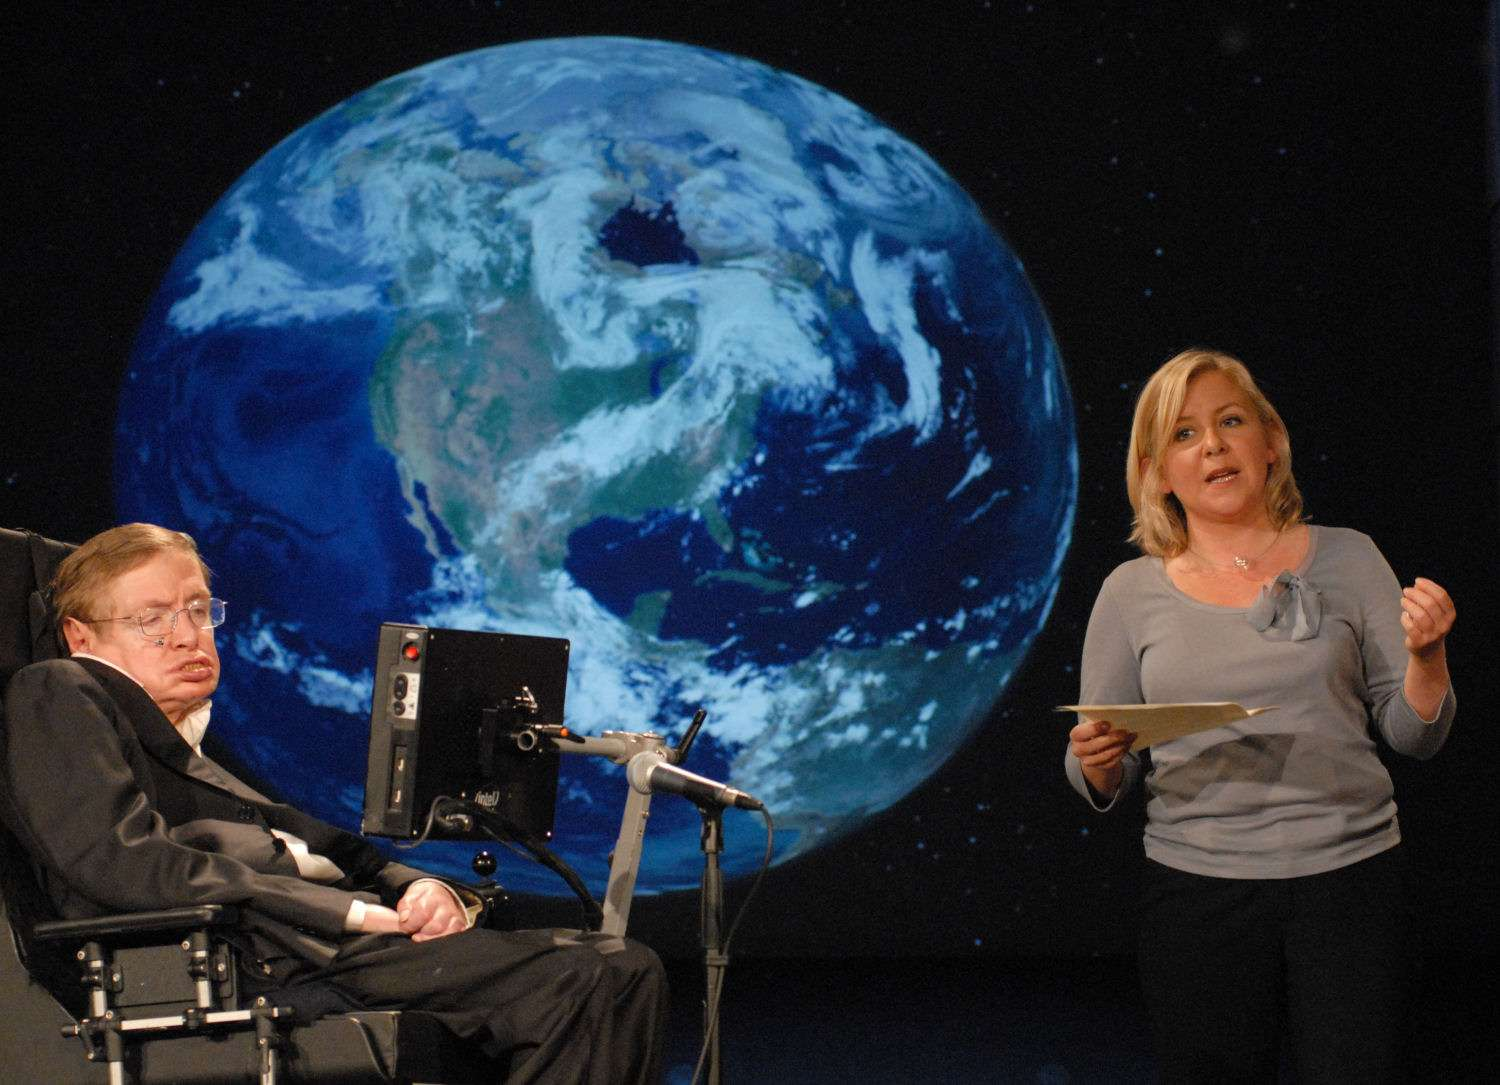 Stephen Hawking et sa fille Lucy. Crédit : George Washington University (GWU).